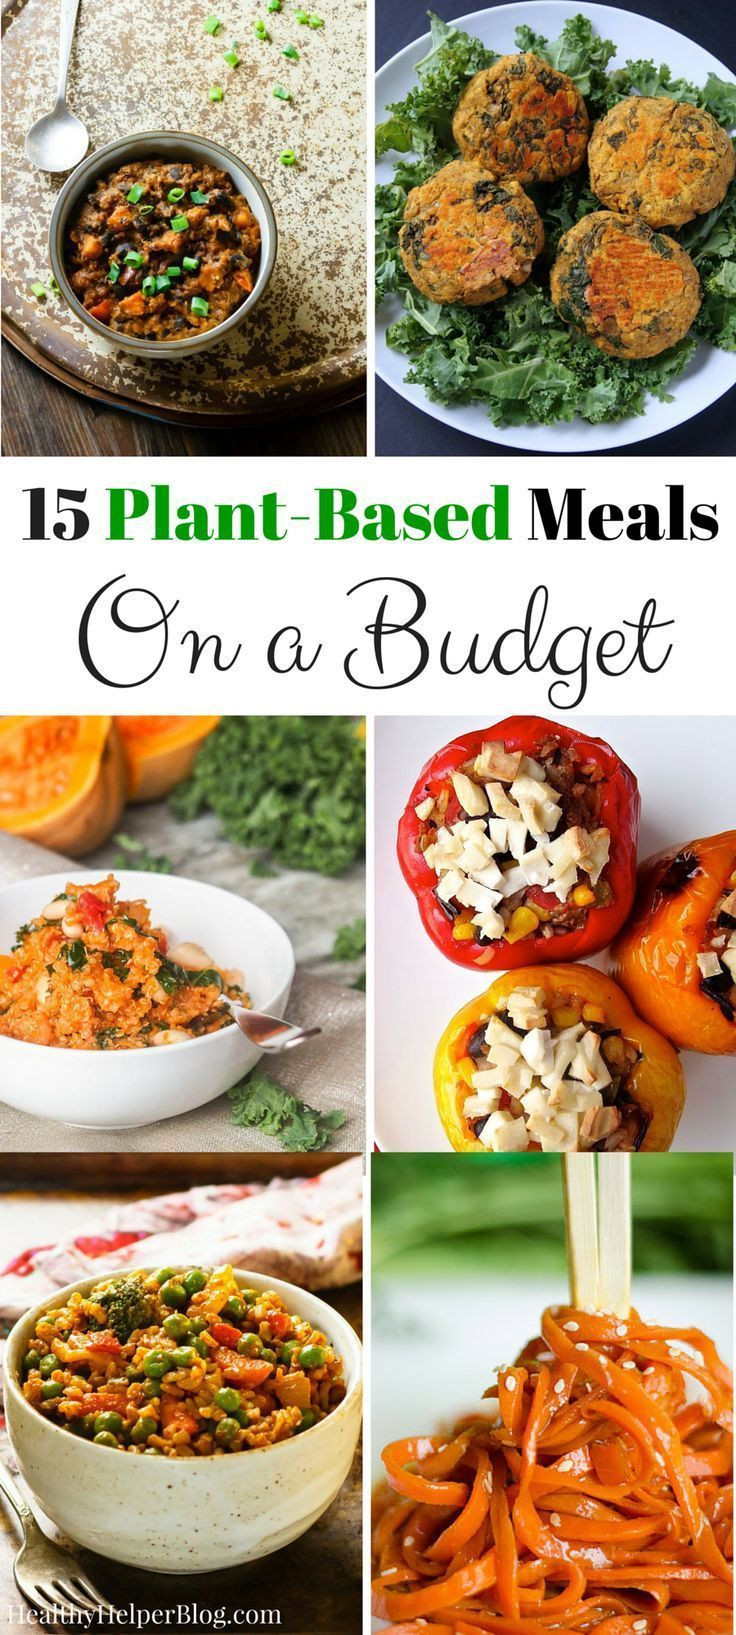 Healthy Family Dinners On A Budget  228 best images about Eating Healthy on a Bud on